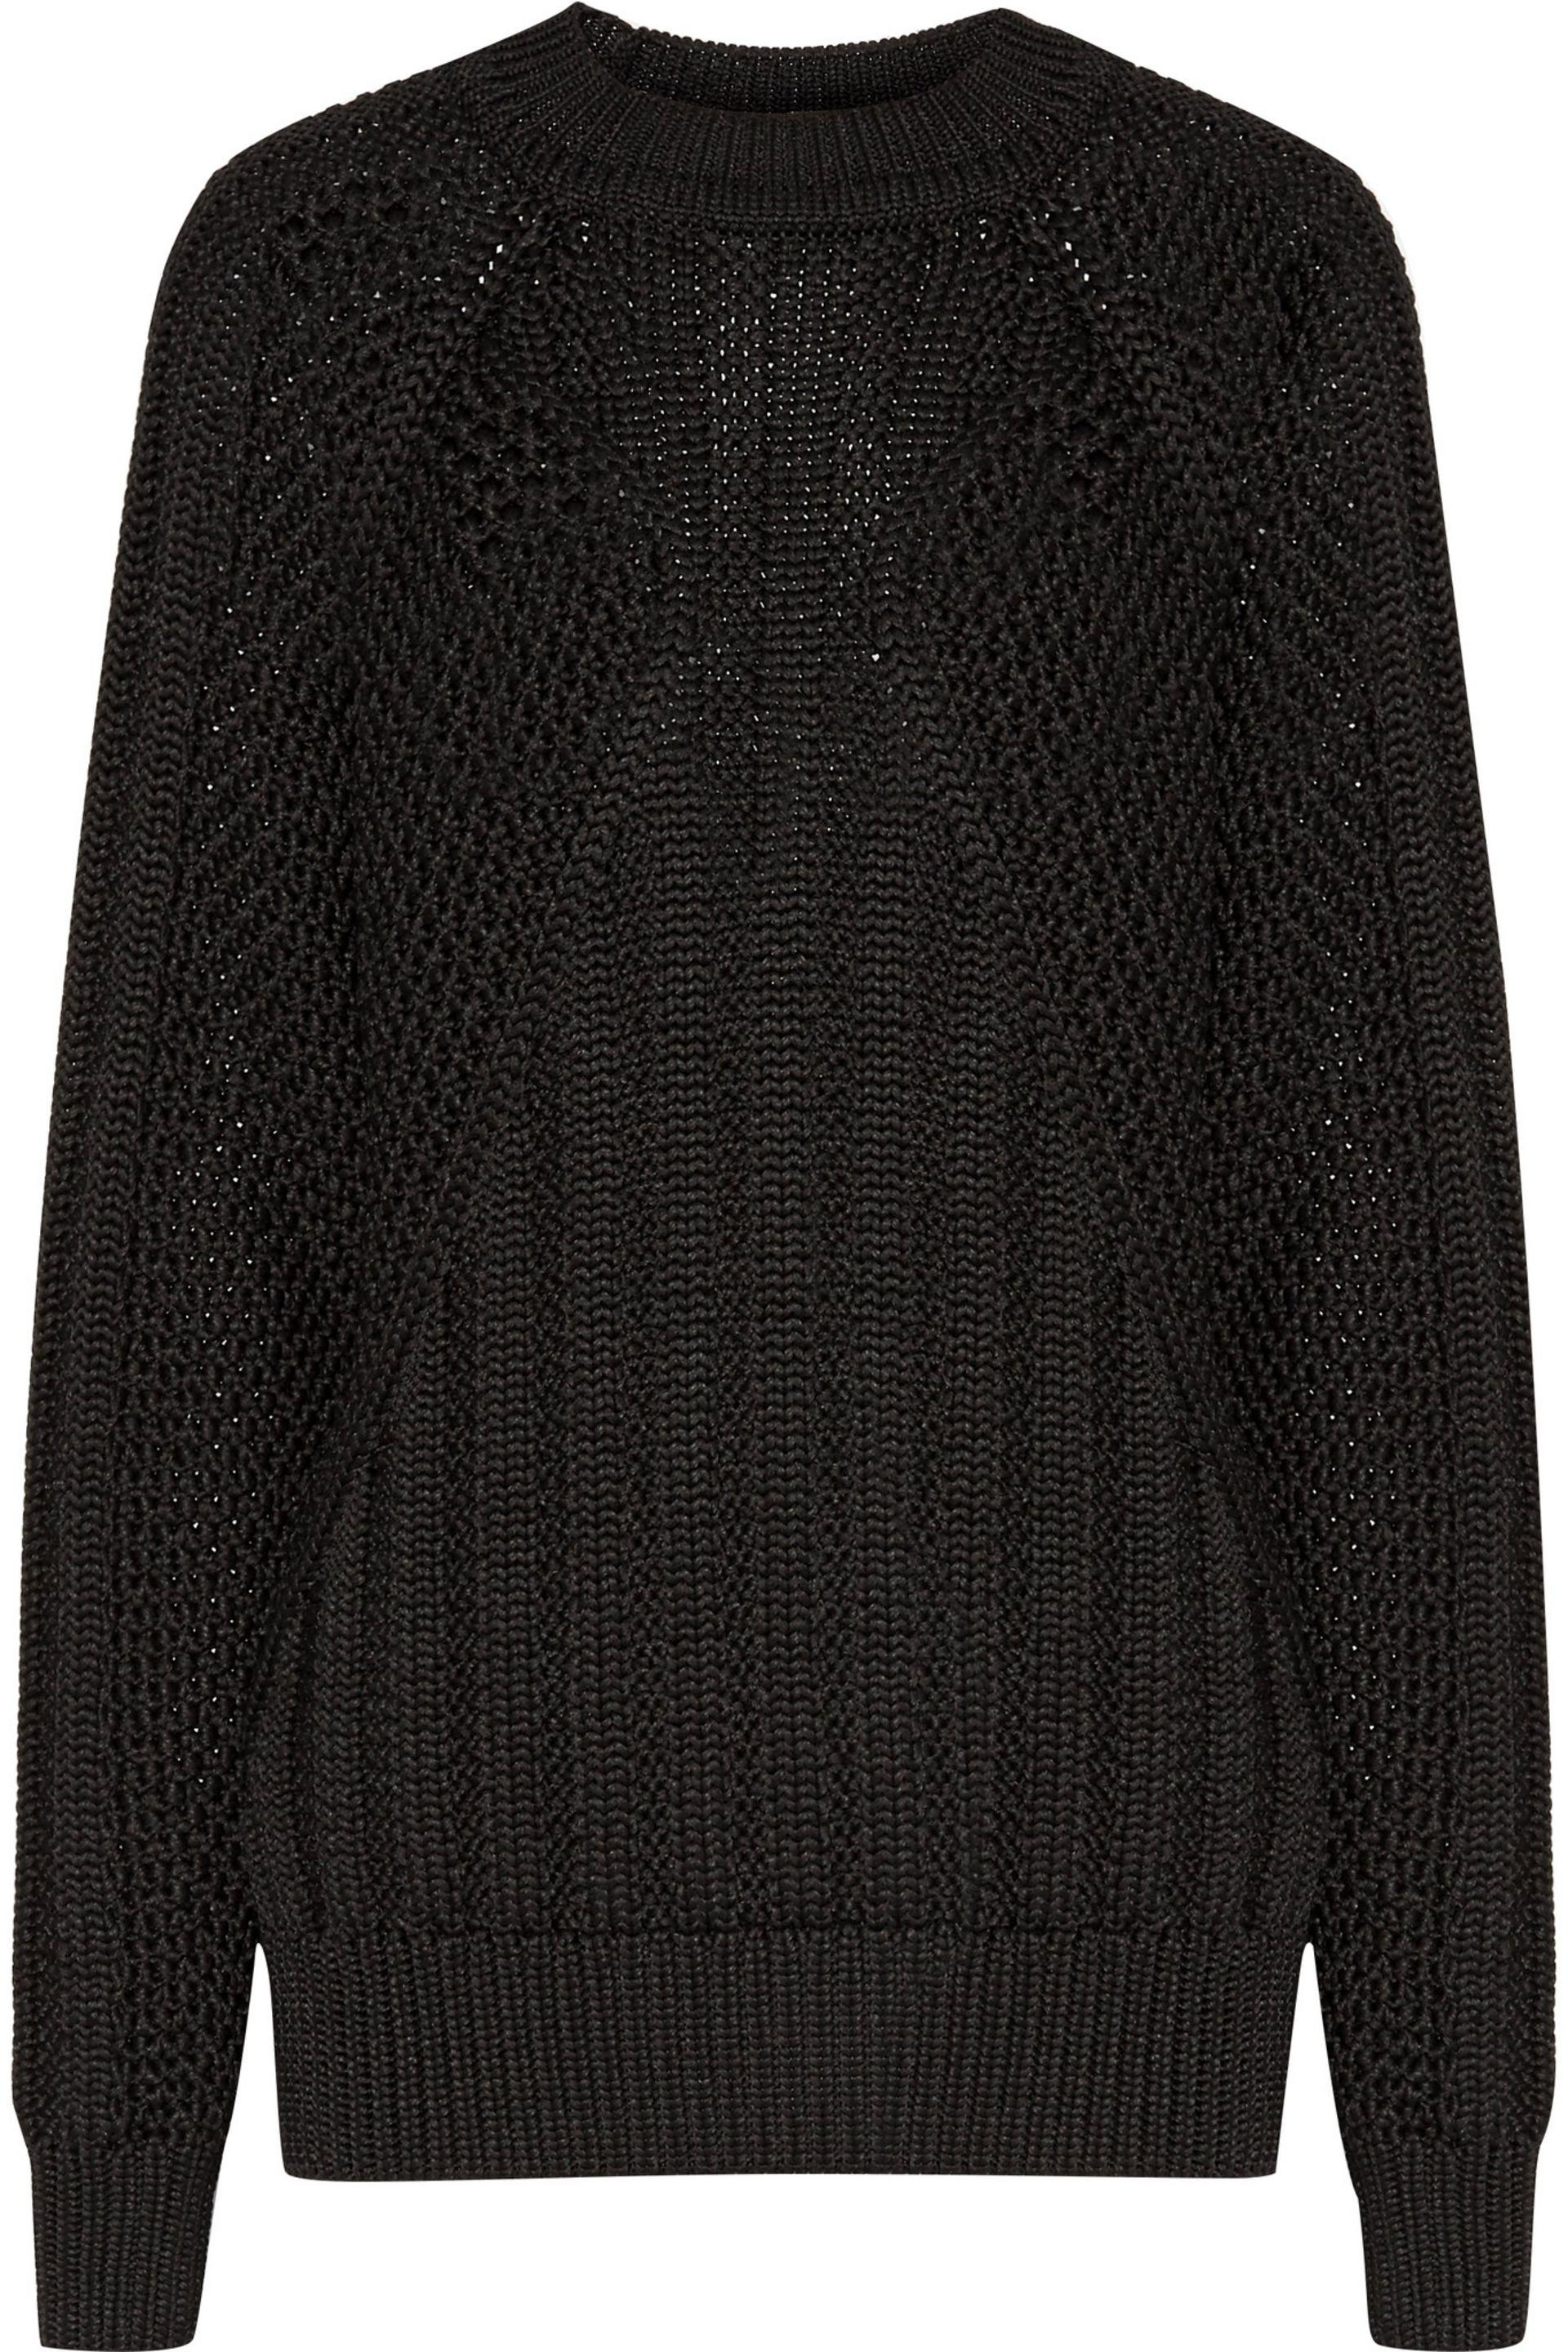 Balmain Cable-knit Sweater in Black | Lyst